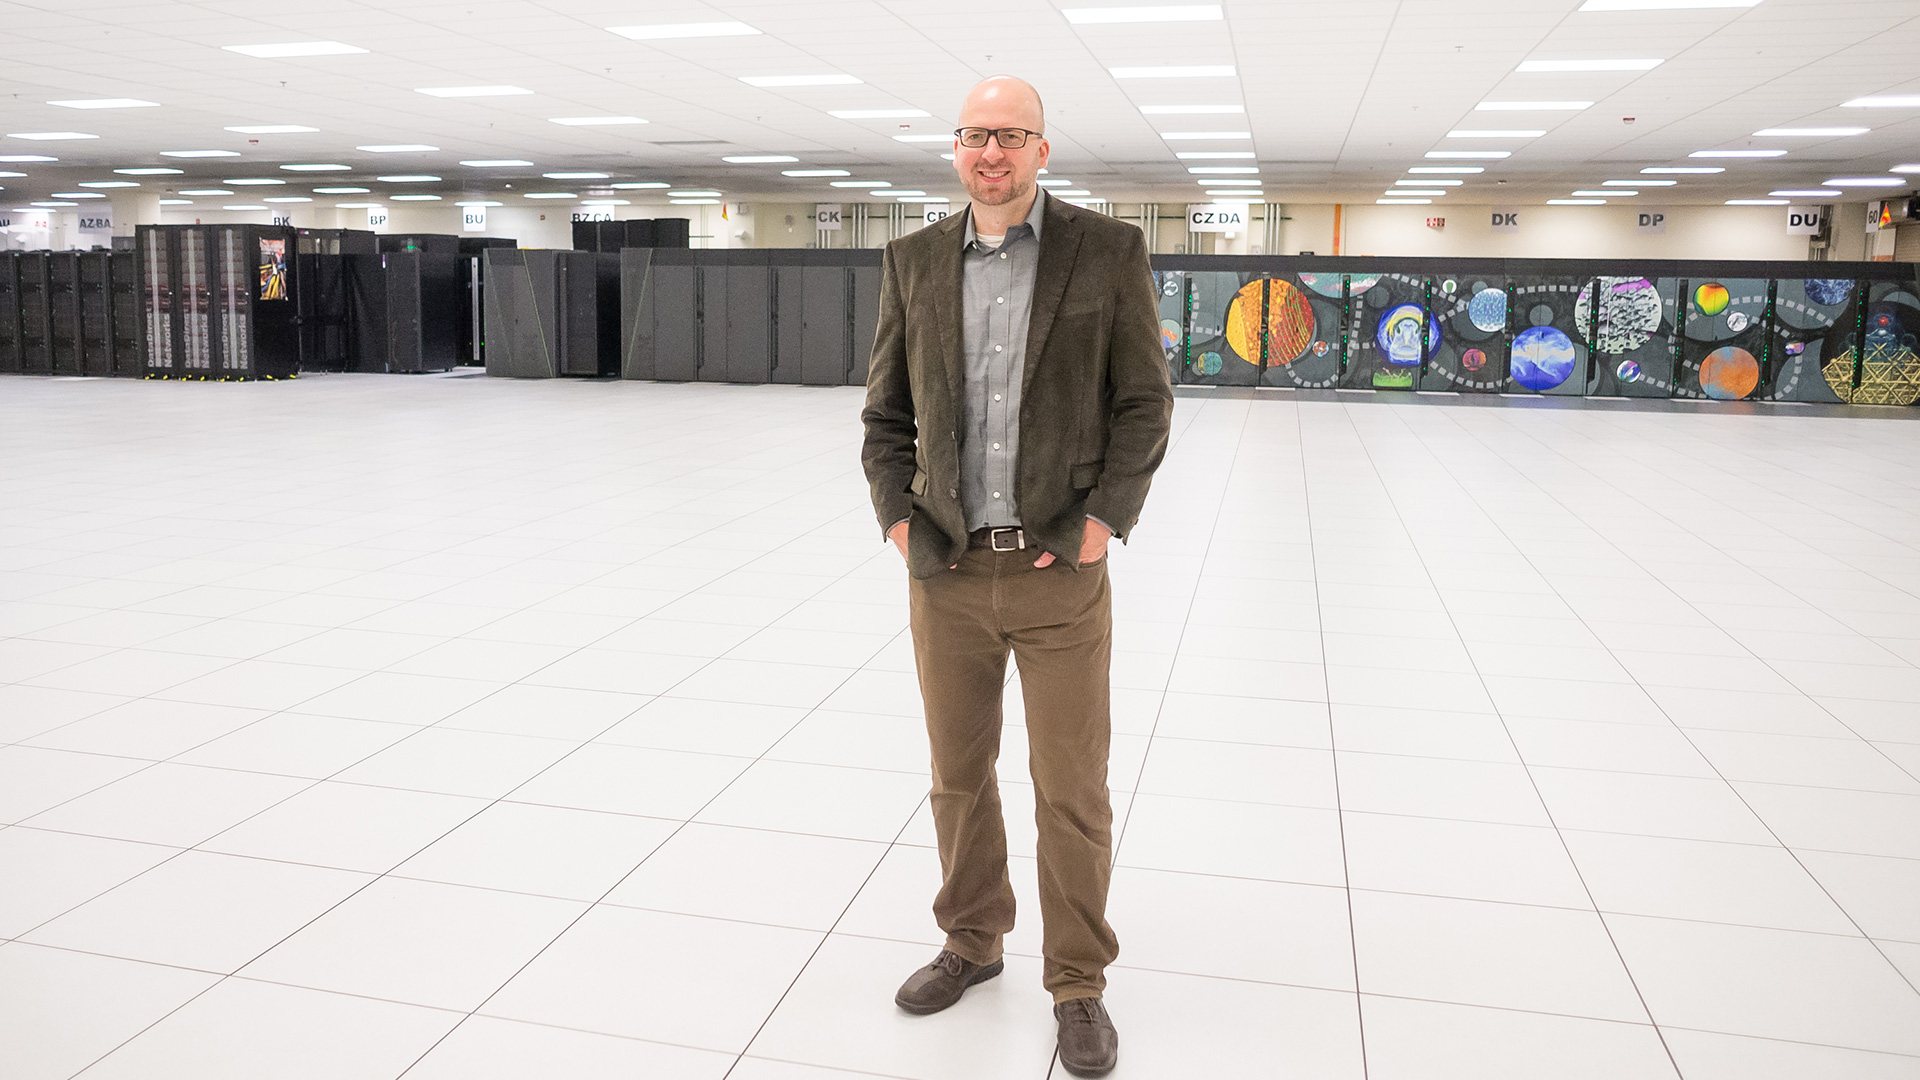 Justin Wozniak of the Swift/T team. Not pictured from the Swift/T team are Jonathan Ozik, Nicholson Collier, Ian Foster and Michael Wilde. (Image by Argonne National Laboratory.)